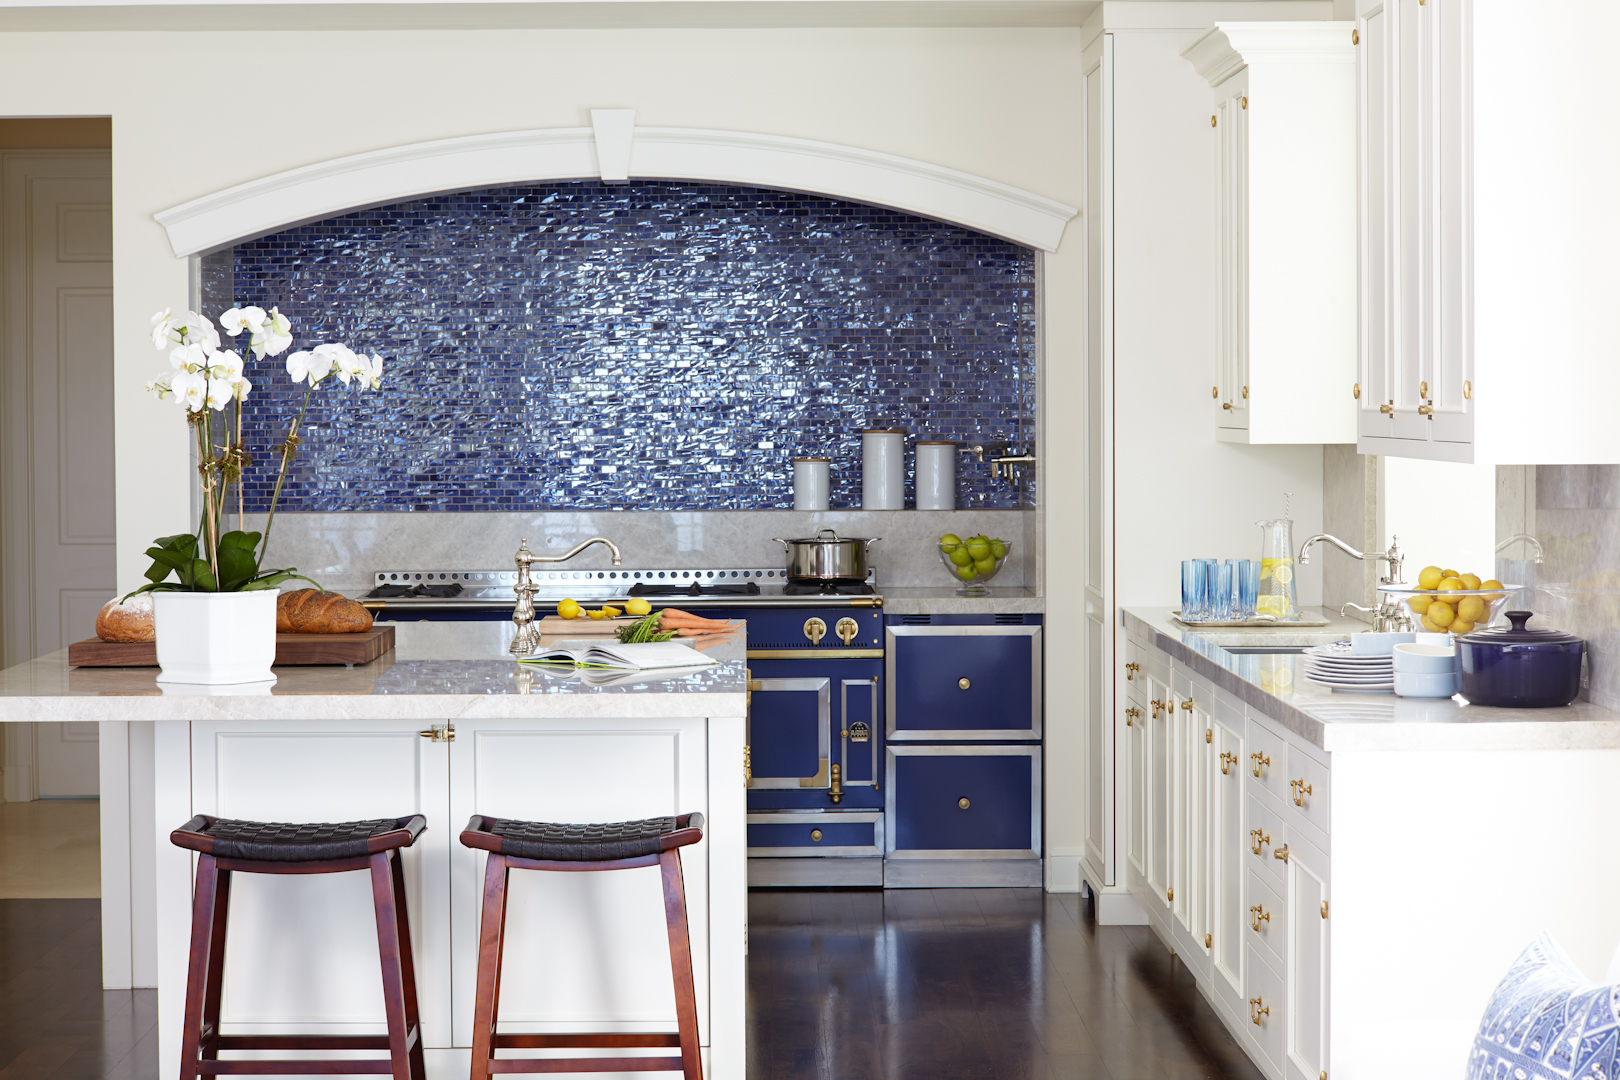 Blue & White Kitchen by St. Charles of New York